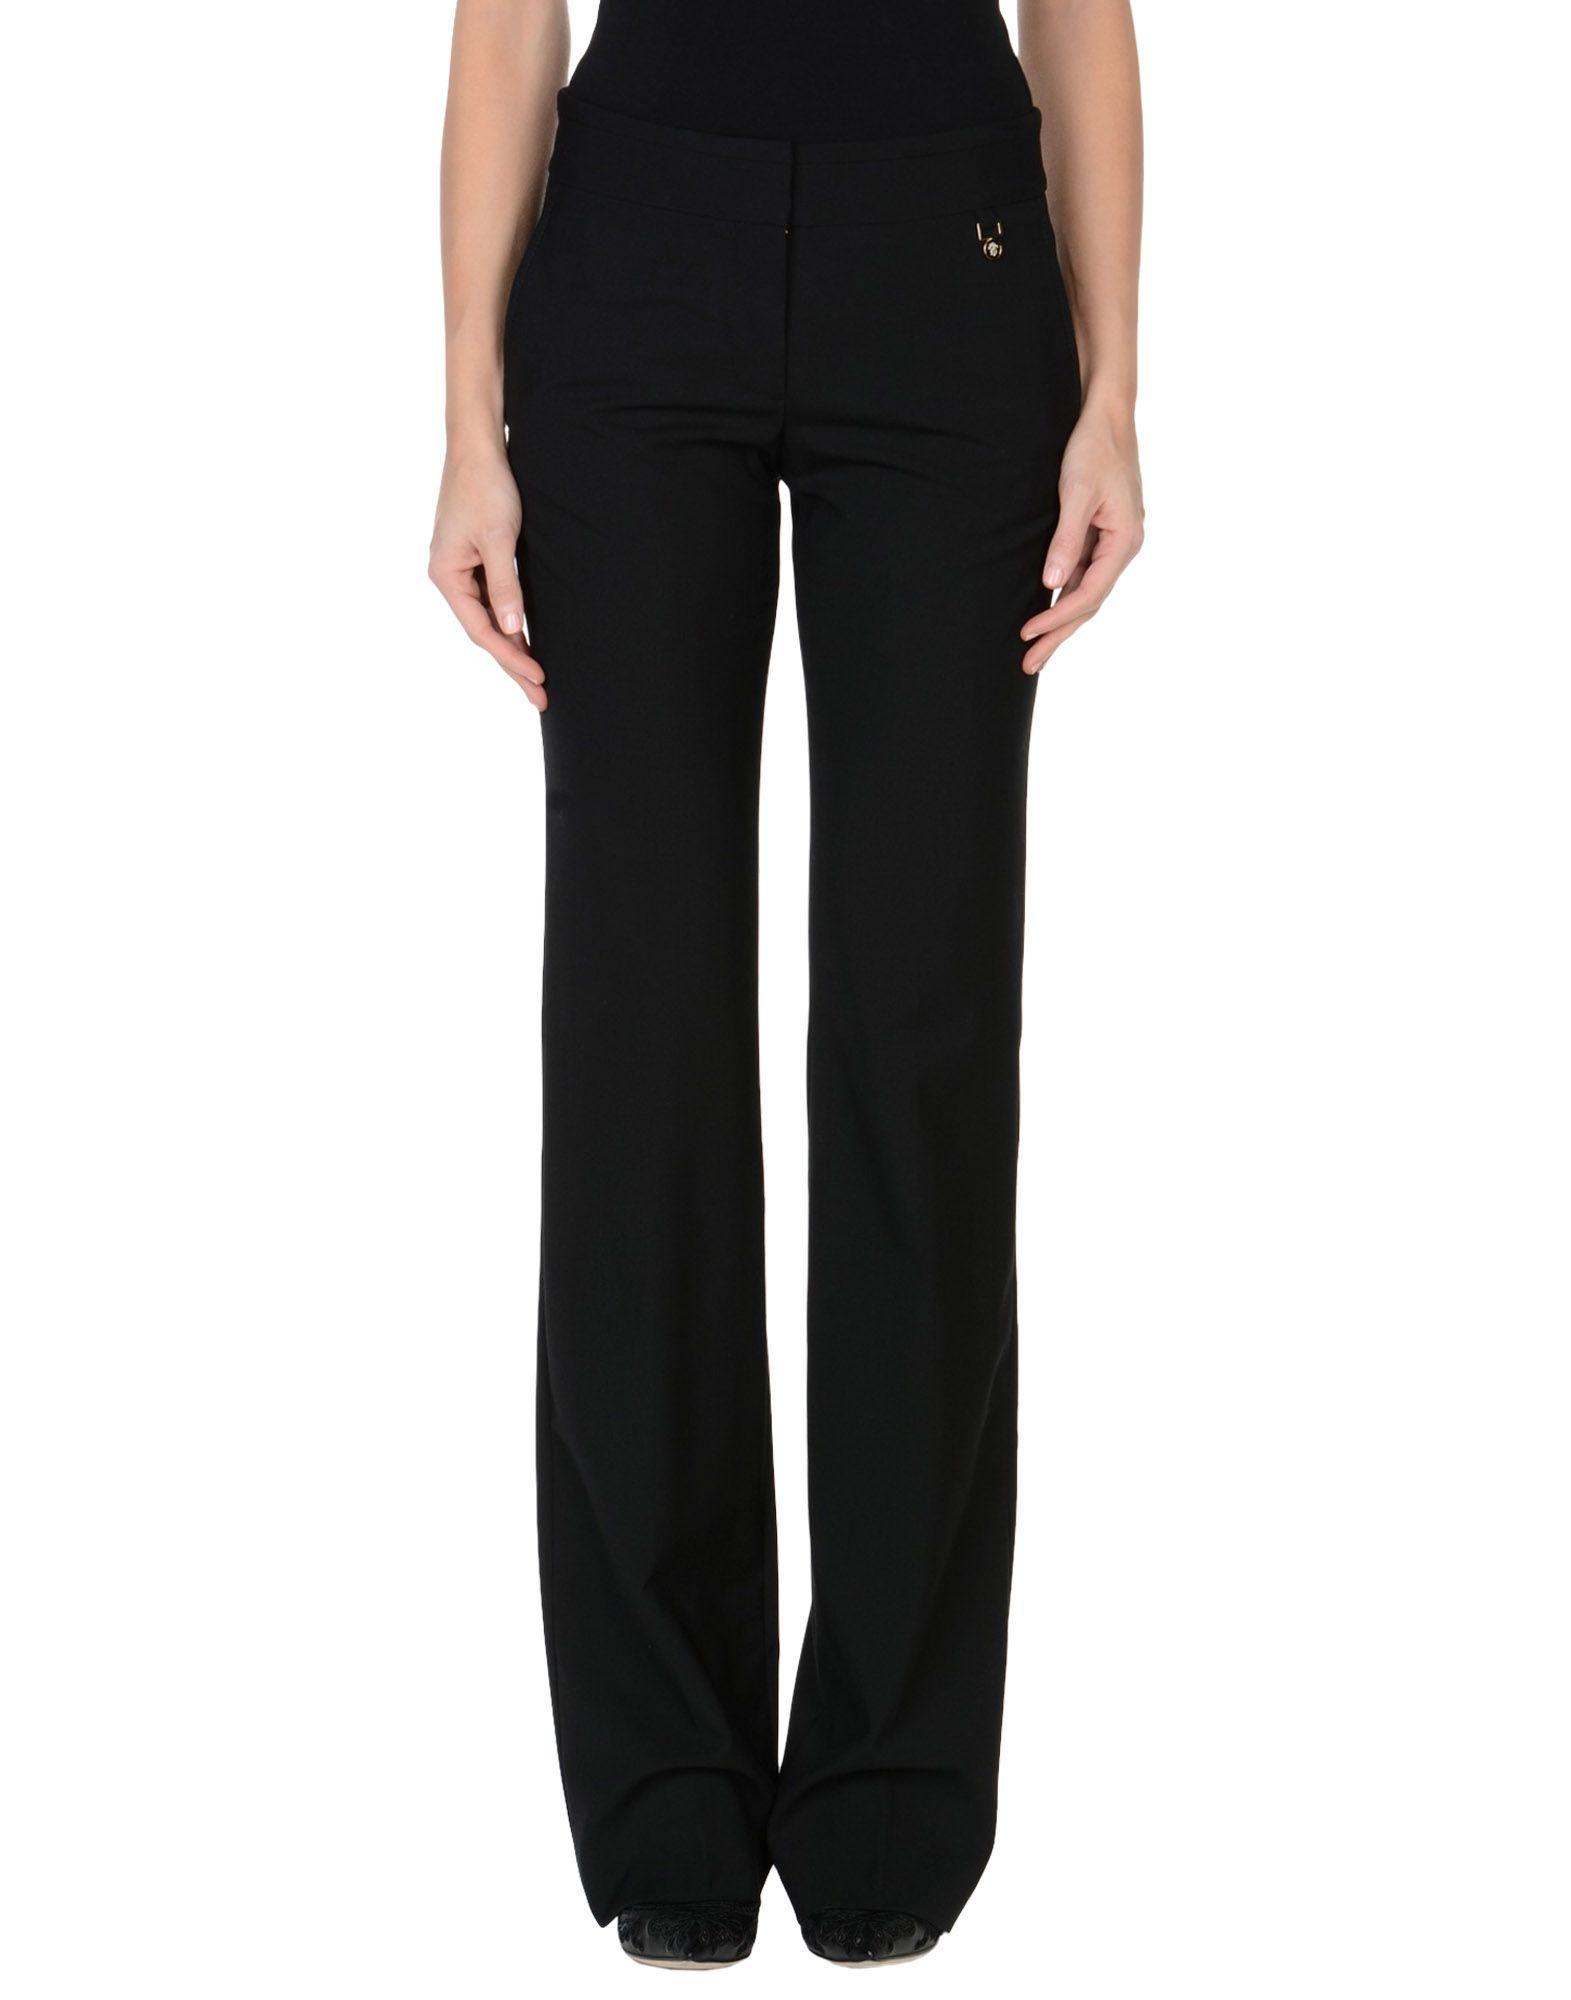 Tory Burch Casual Pants In Black